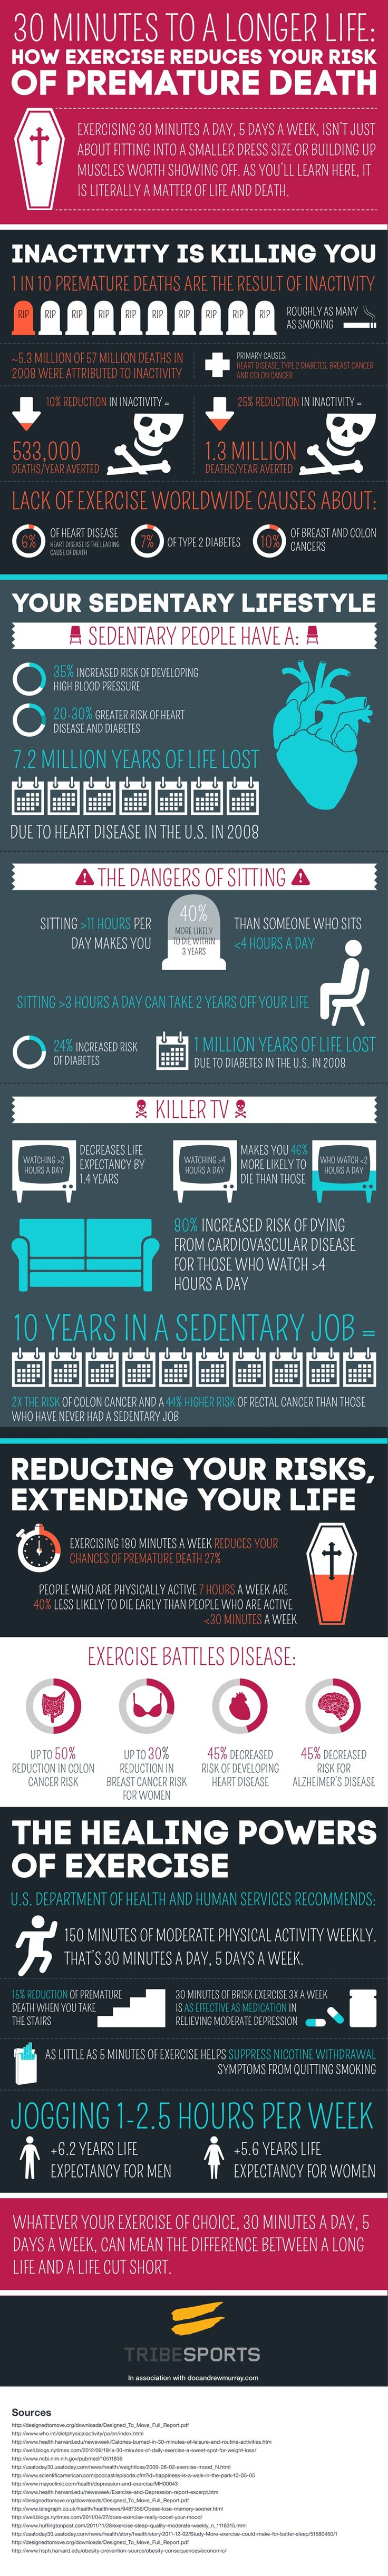 Is Sitting Too Much is Killing You?